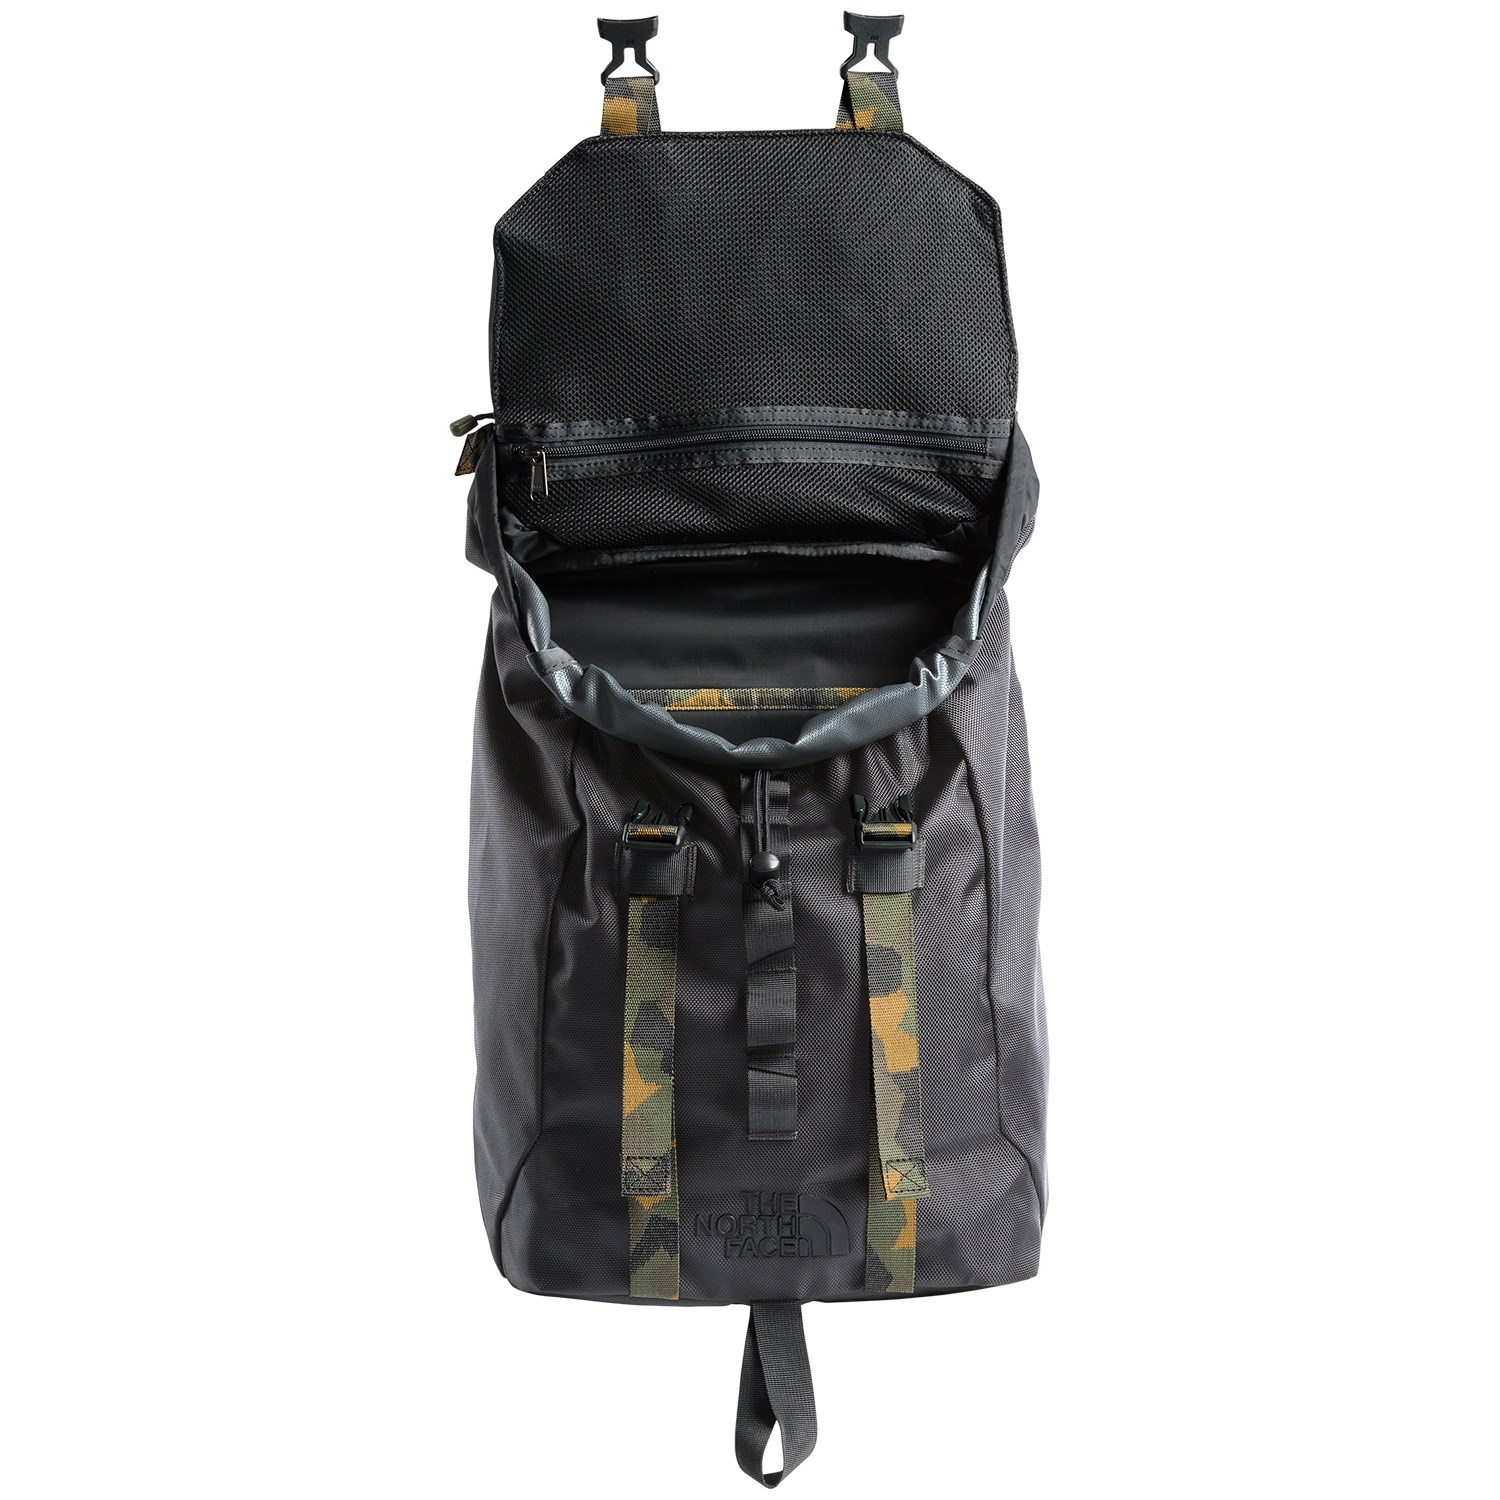 d3ec454f9 The North Face Lineage Ruck 23L Backpack | evo